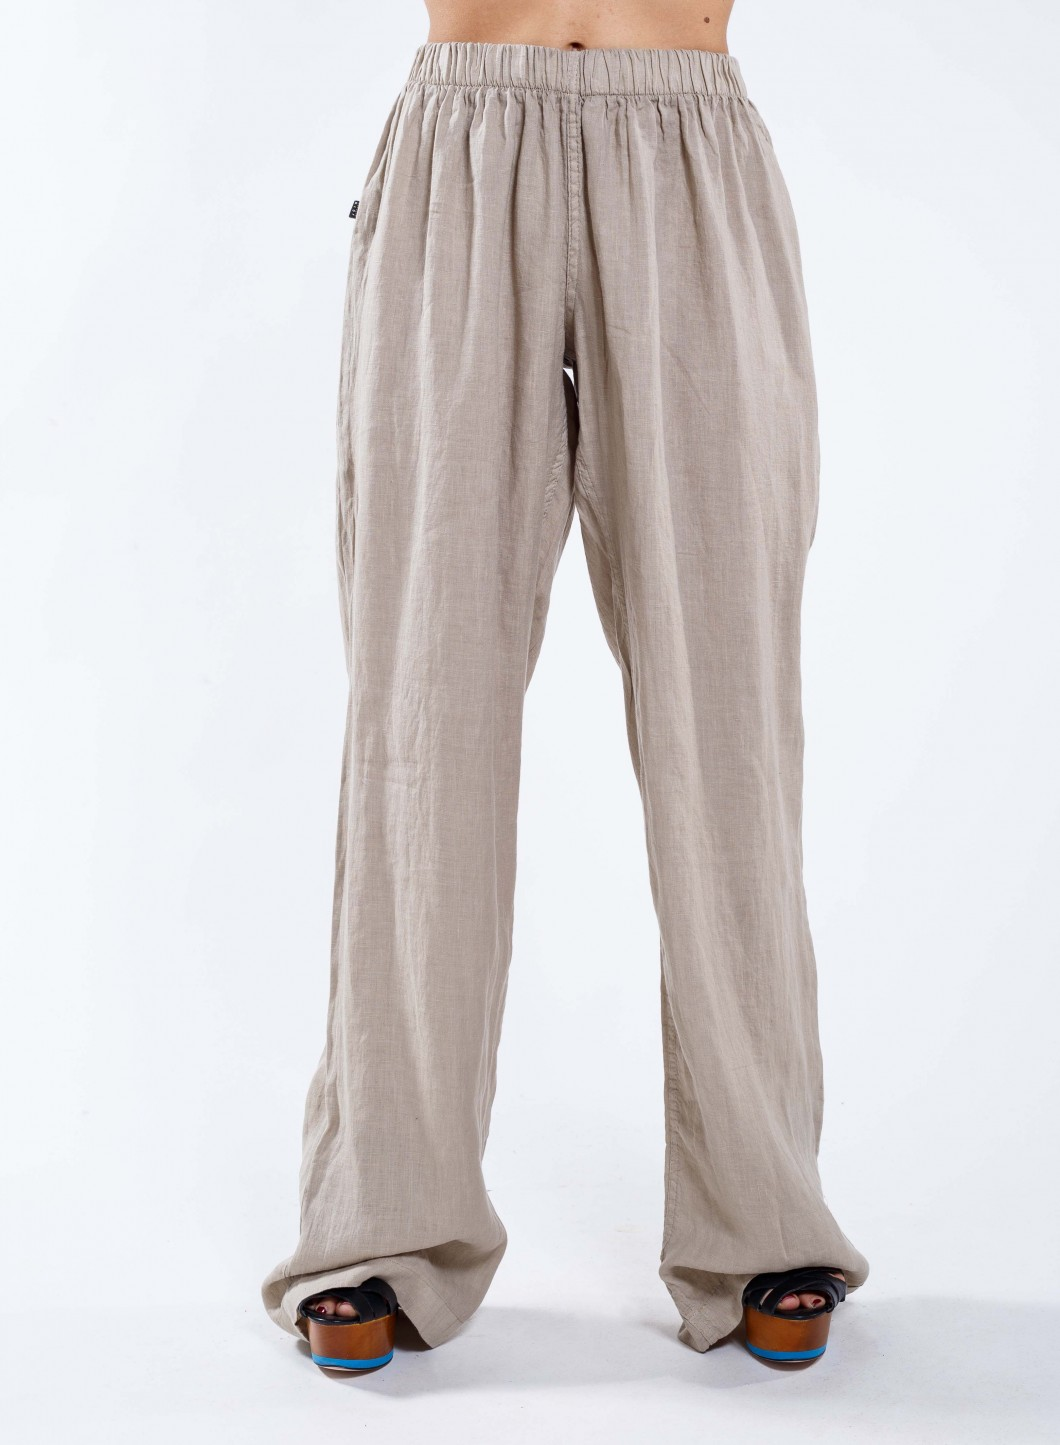 Pants Simple Women's 100% Linen